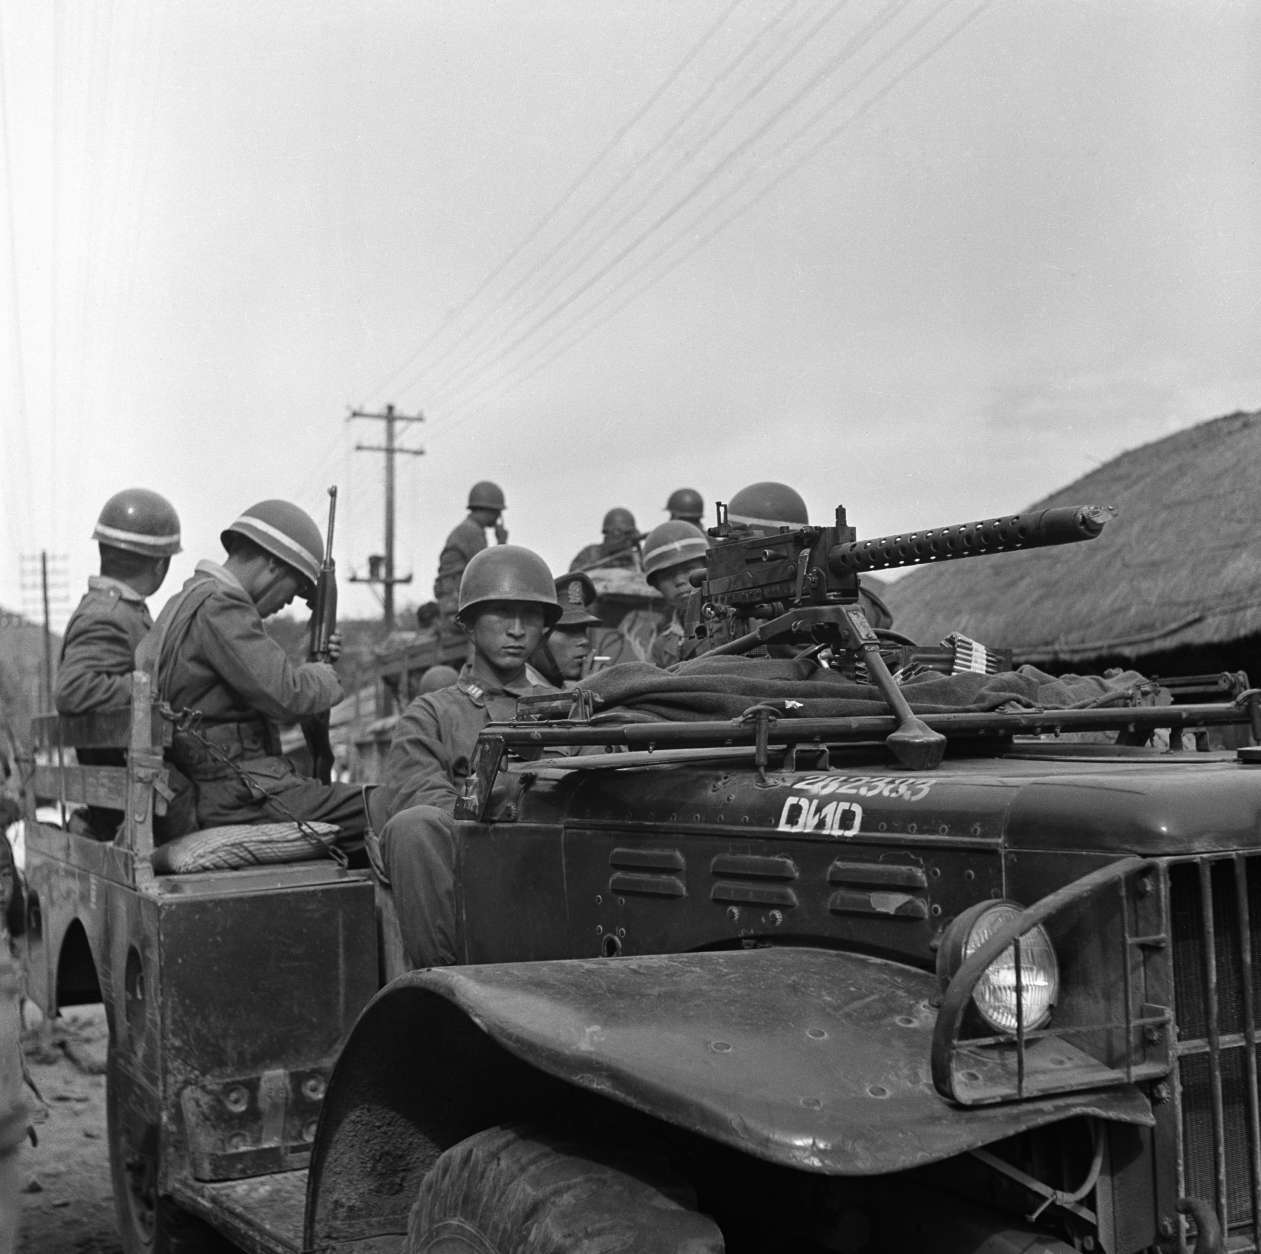 South Korean army troops man American built trucks on June 25, 1950, as they defend their country land against Russian invasion. North Korean Communist troops invaded the American sponsored South Korean republic causing an international situation. (AP Phot/T. Lambert )